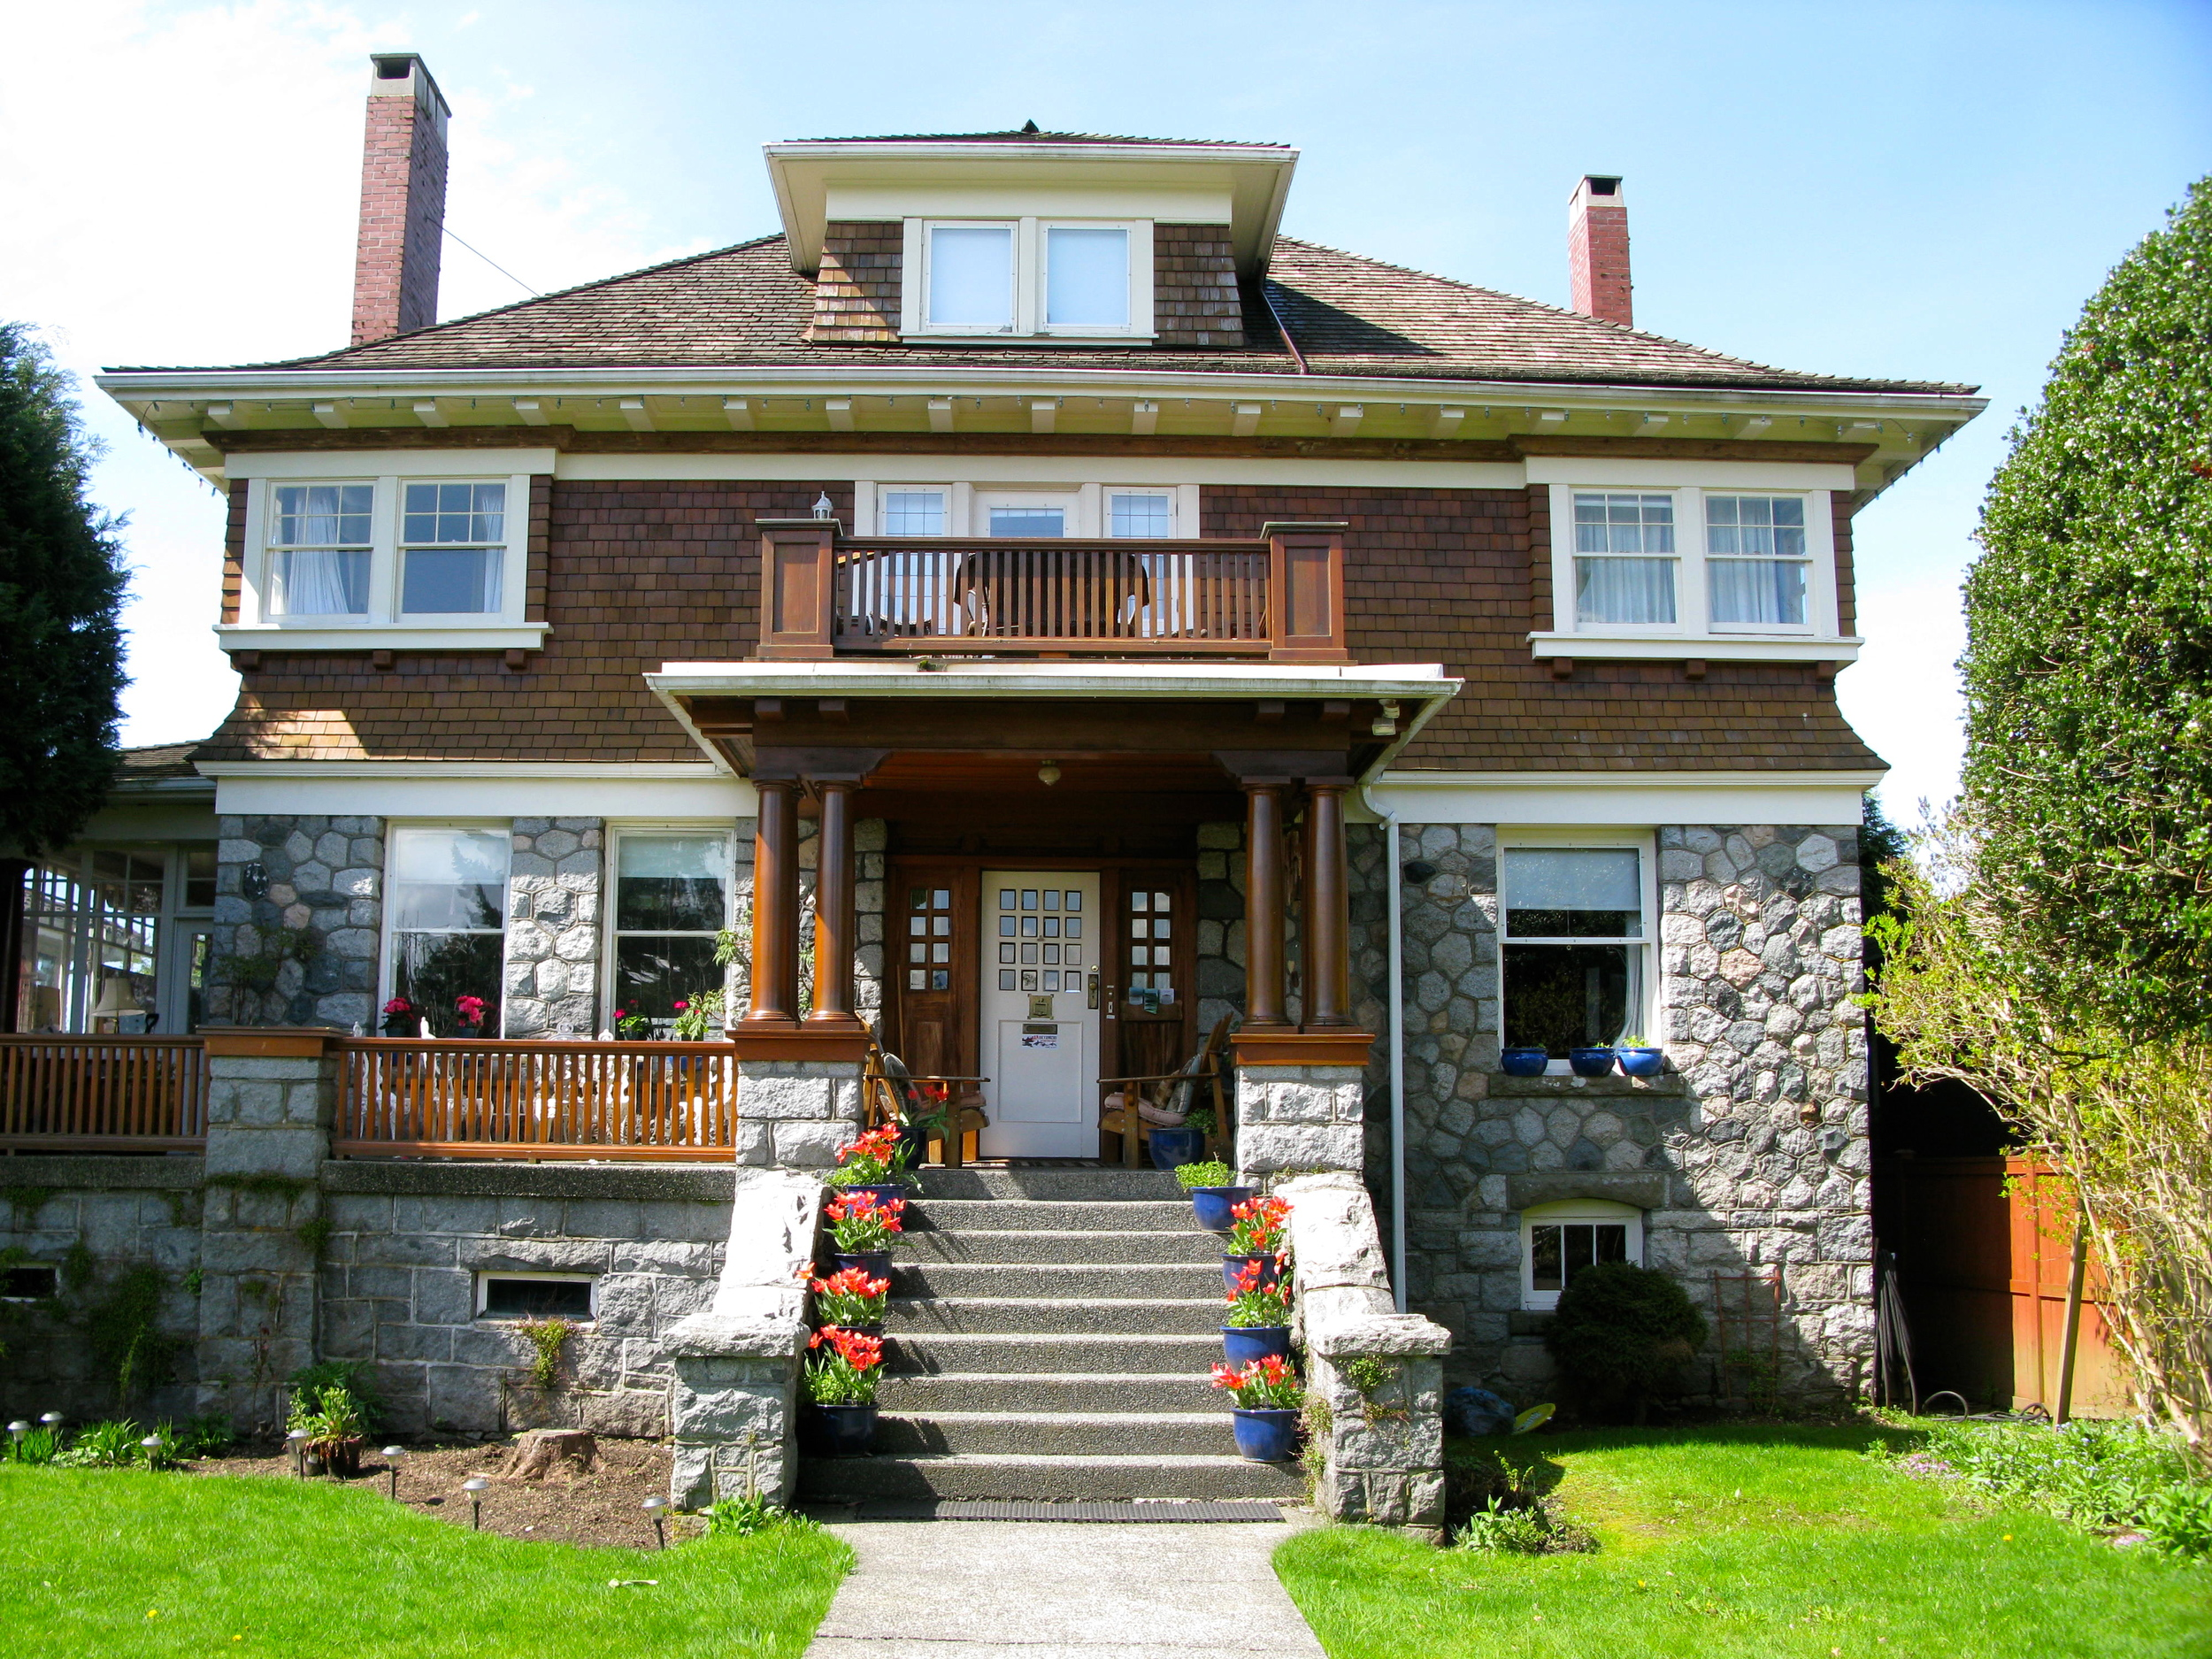 THE GRANDMANOR GUEST HOUSE - 1617 GRAND BLVD, NORTH VANCOUVER , V7L 3Y2 - FURNISHED ROOMS FOR RENT